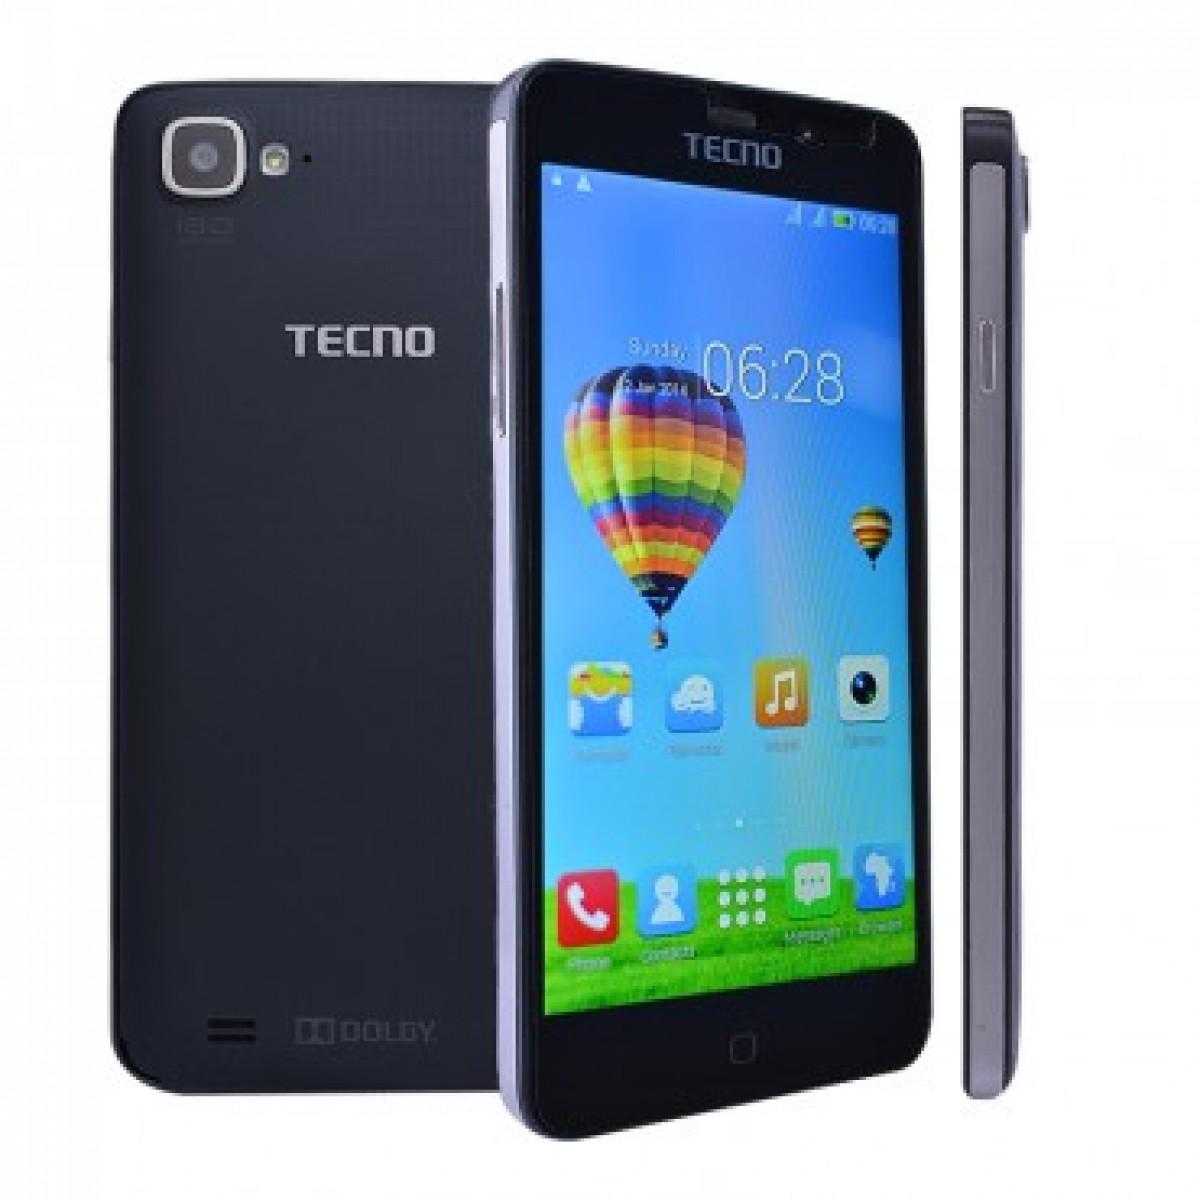 Root and Install TWRP Recovery on Tecno M6, How to Root Tecno M6, Install TWRP Recovery on Tecno M6, Root Tecno M6 Using supersu